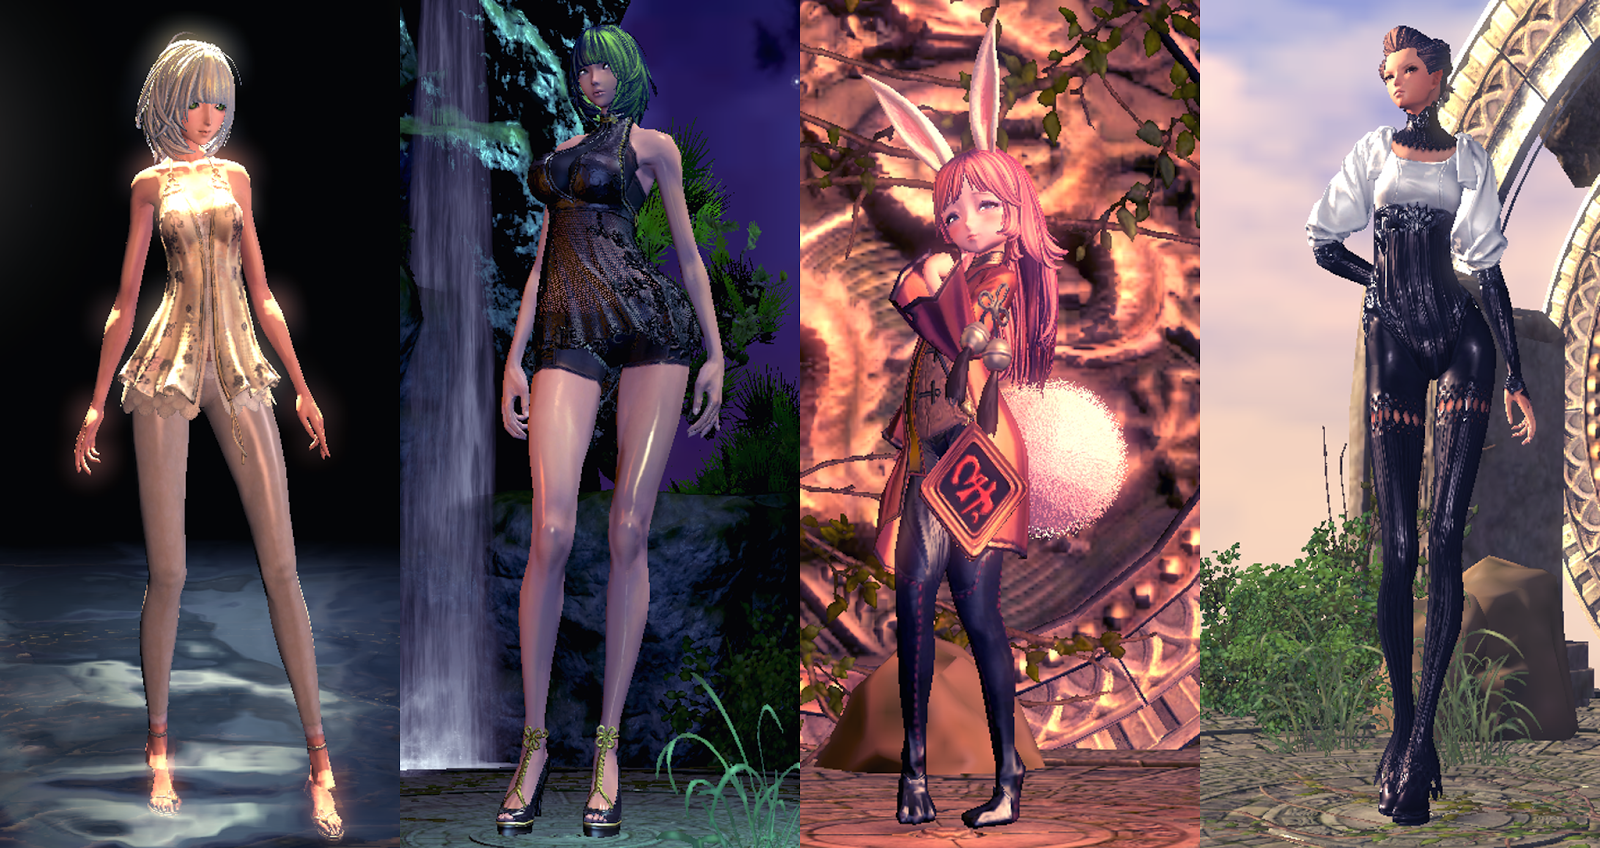 Blade and soul nyde mode pron boob